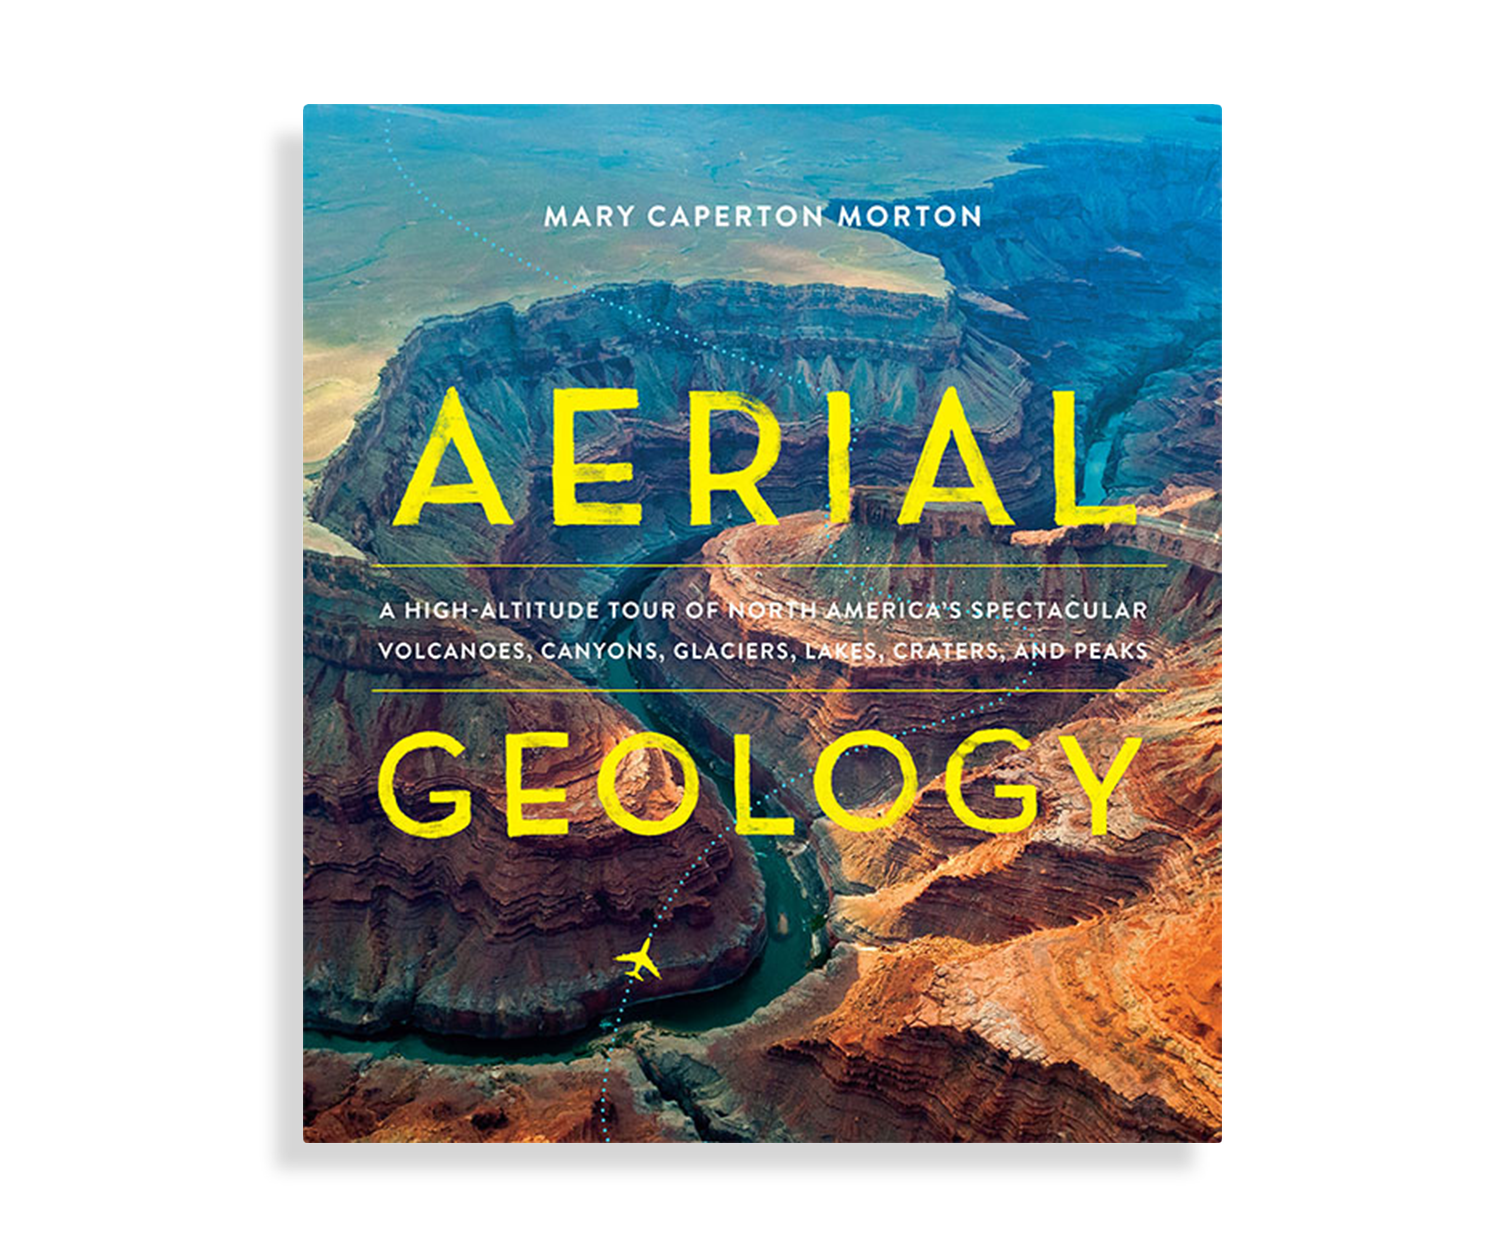 book_aerialgeology_cover_001.png